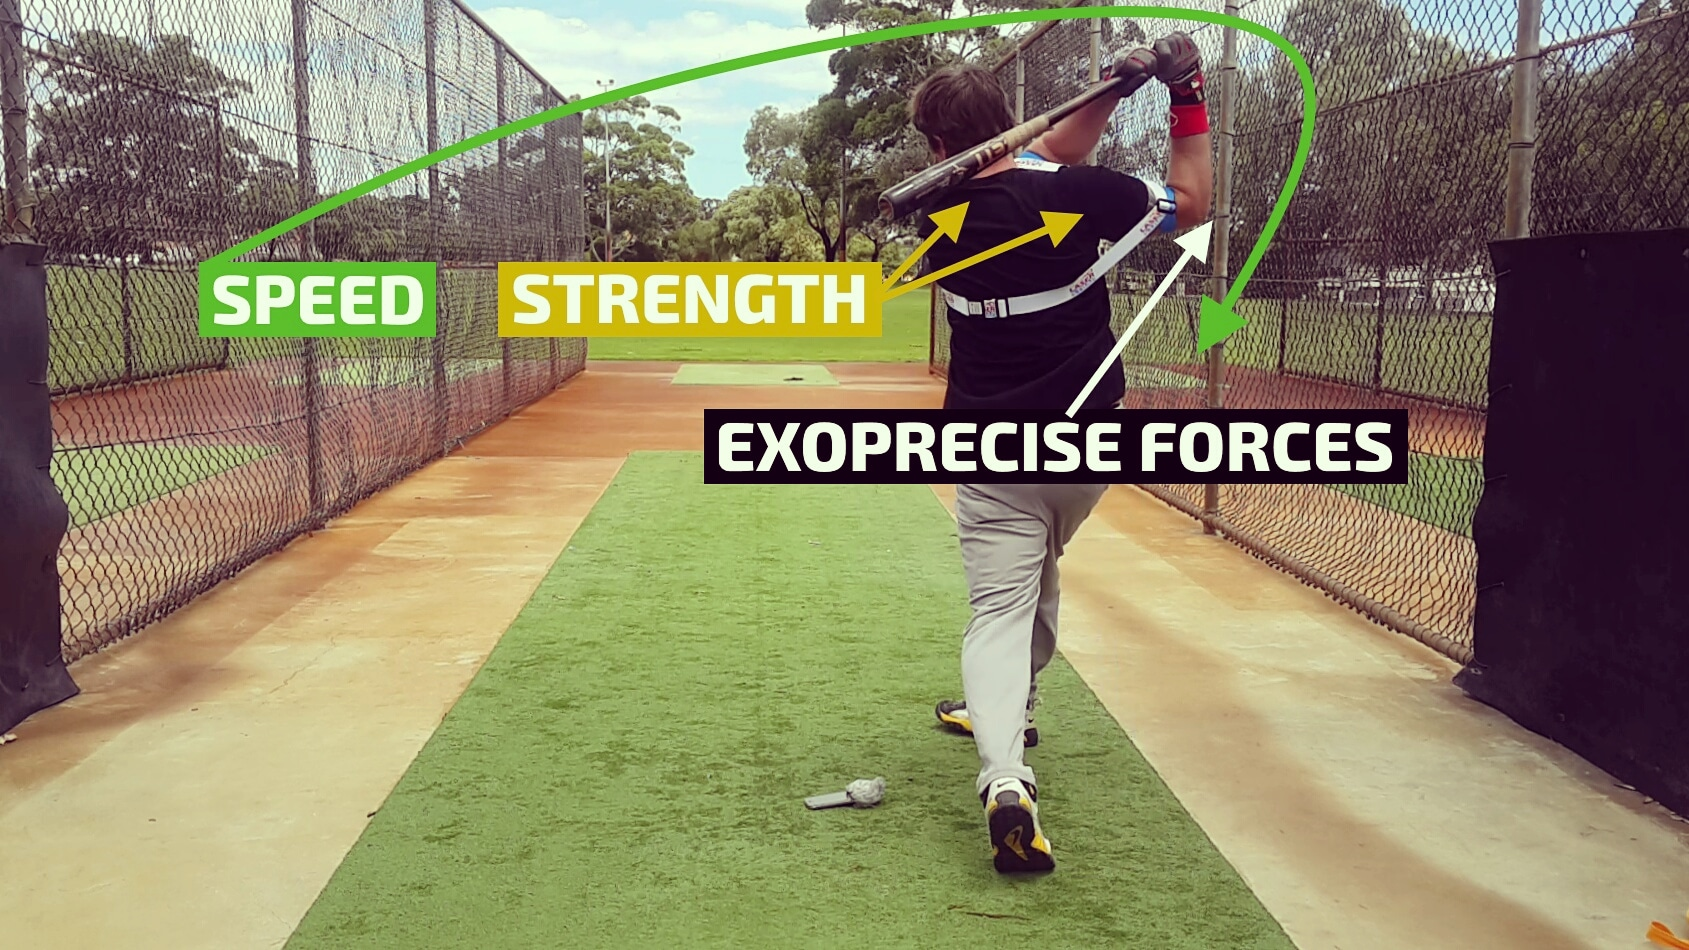 Upward movement, rotating around the body. The lead elbow starts the Accelerated Launch phase, the precise pushing force strengthens hitting muscles, and pulls the trail elbow, increasing bat speed.